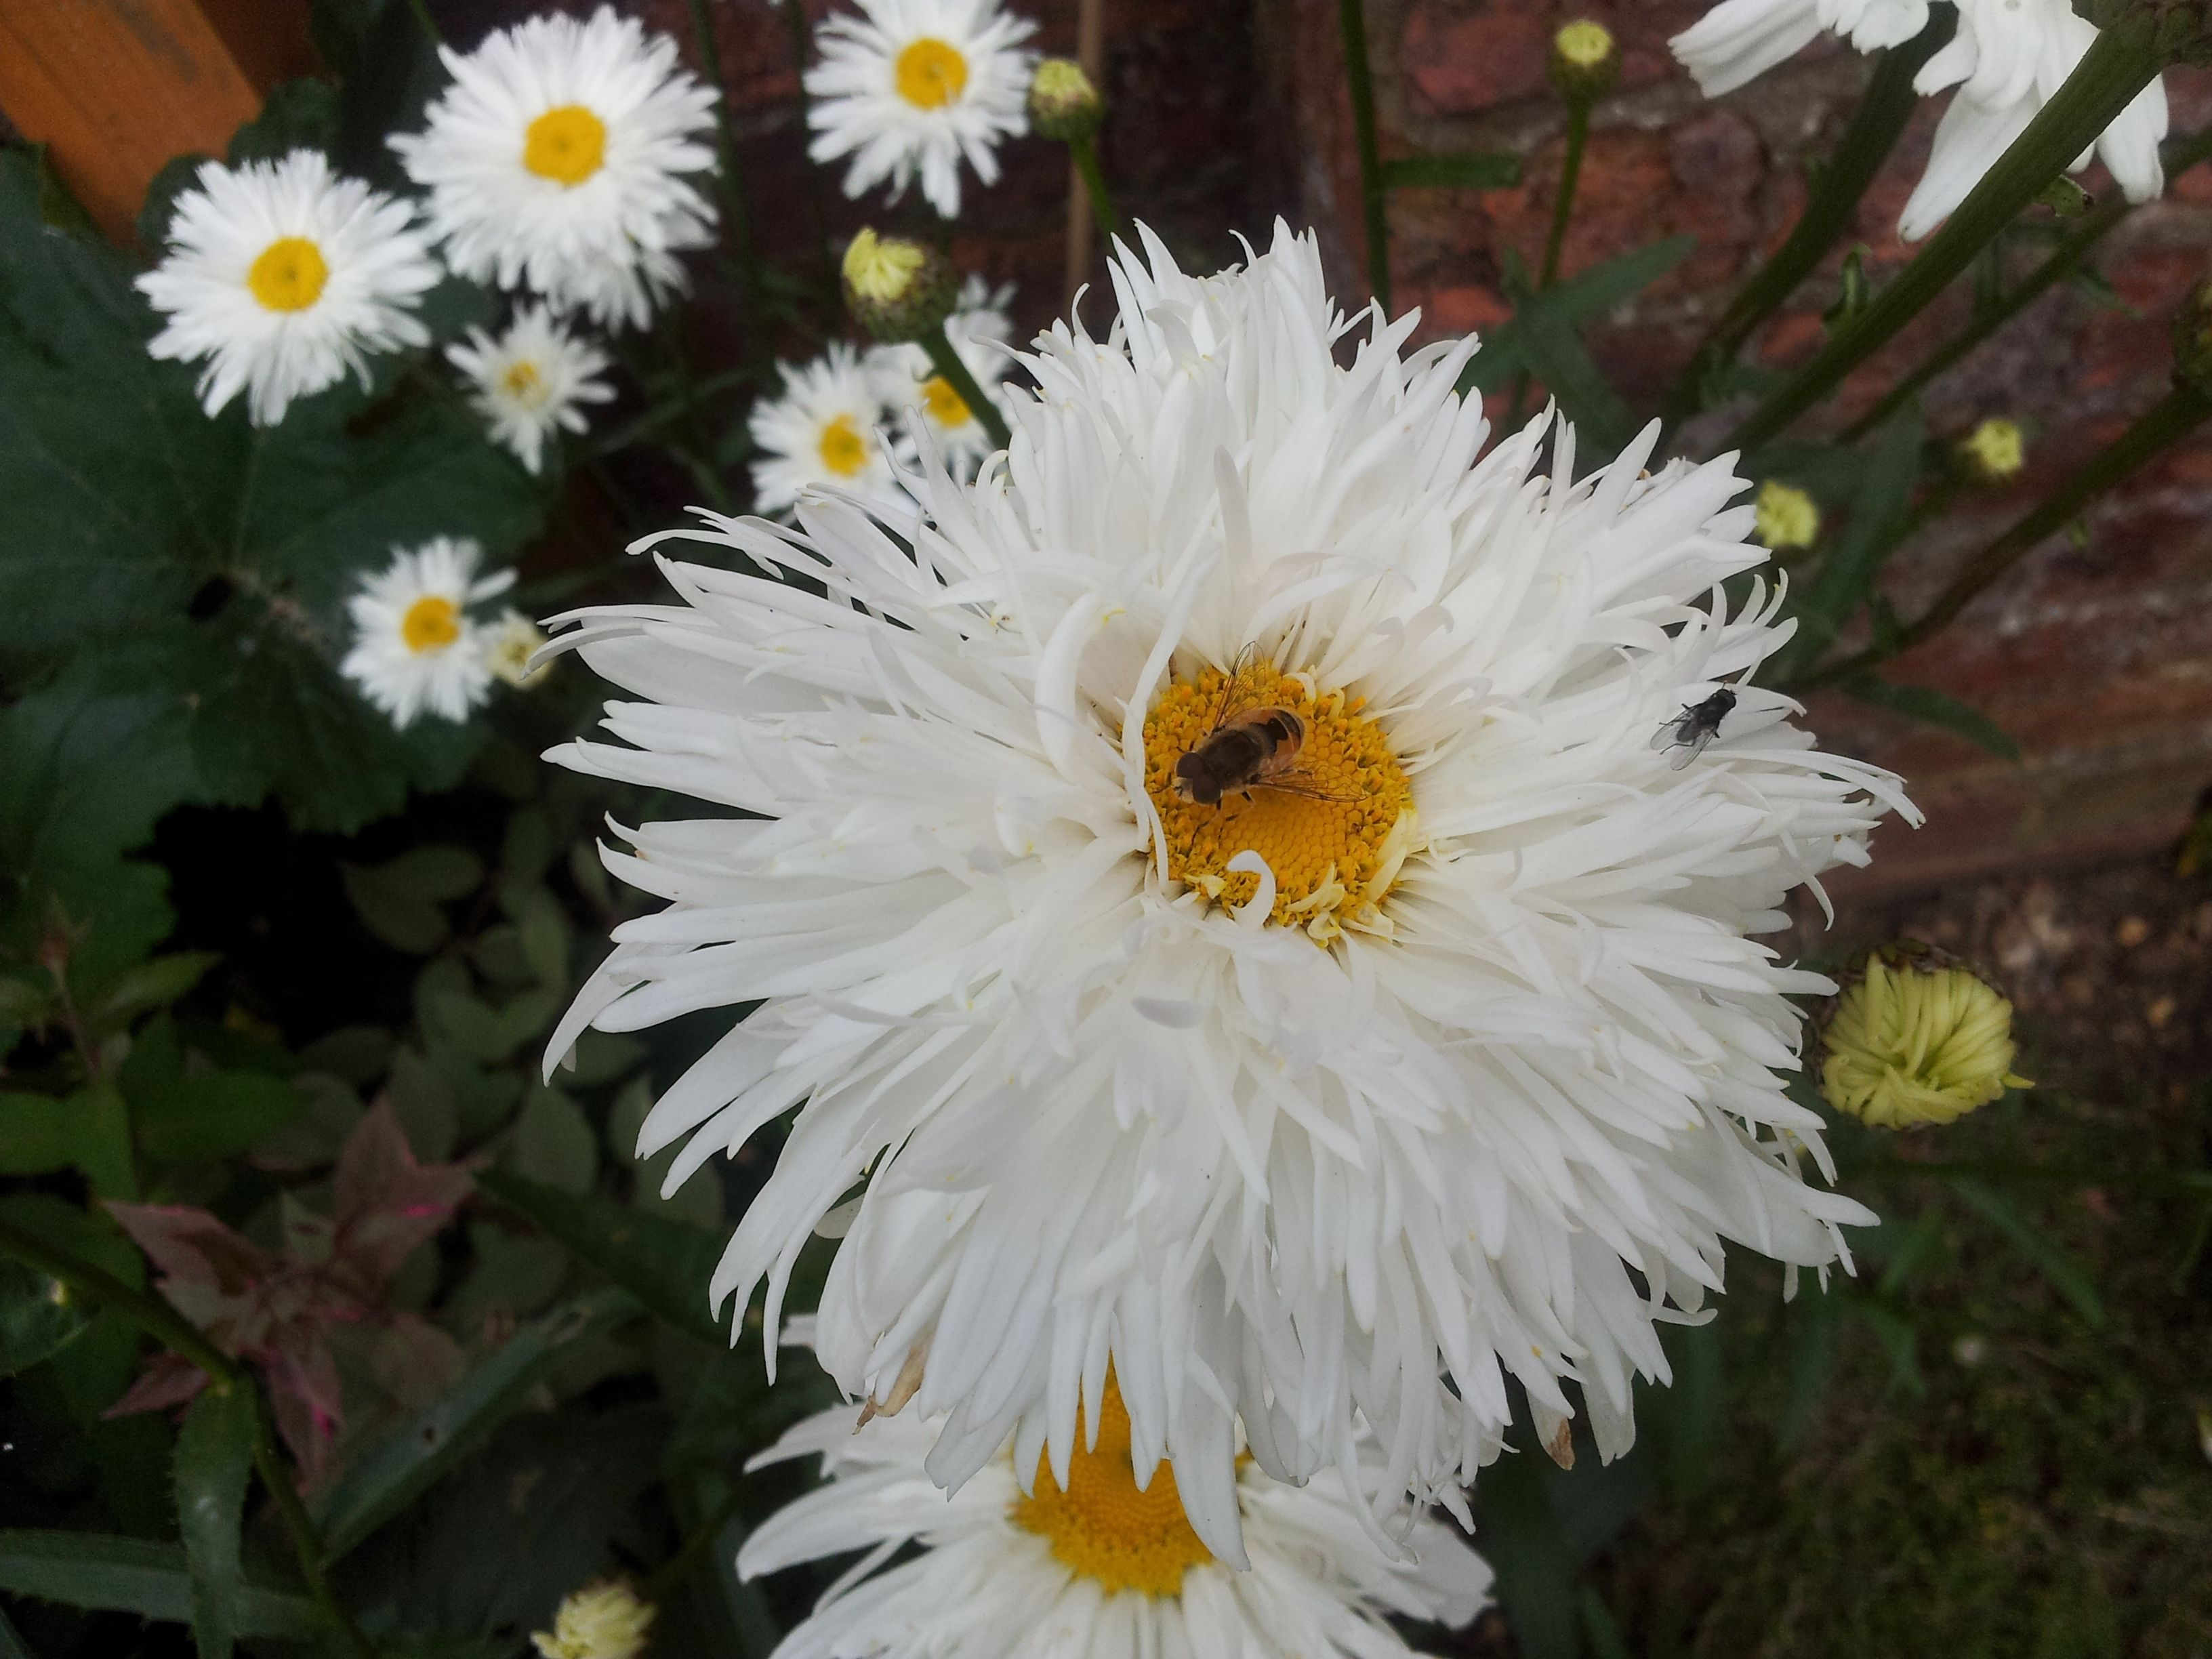 Hover fly on white daisy like flower must find the proper name hover fly on white daisy like flower must find the proper name izmirmasajfo